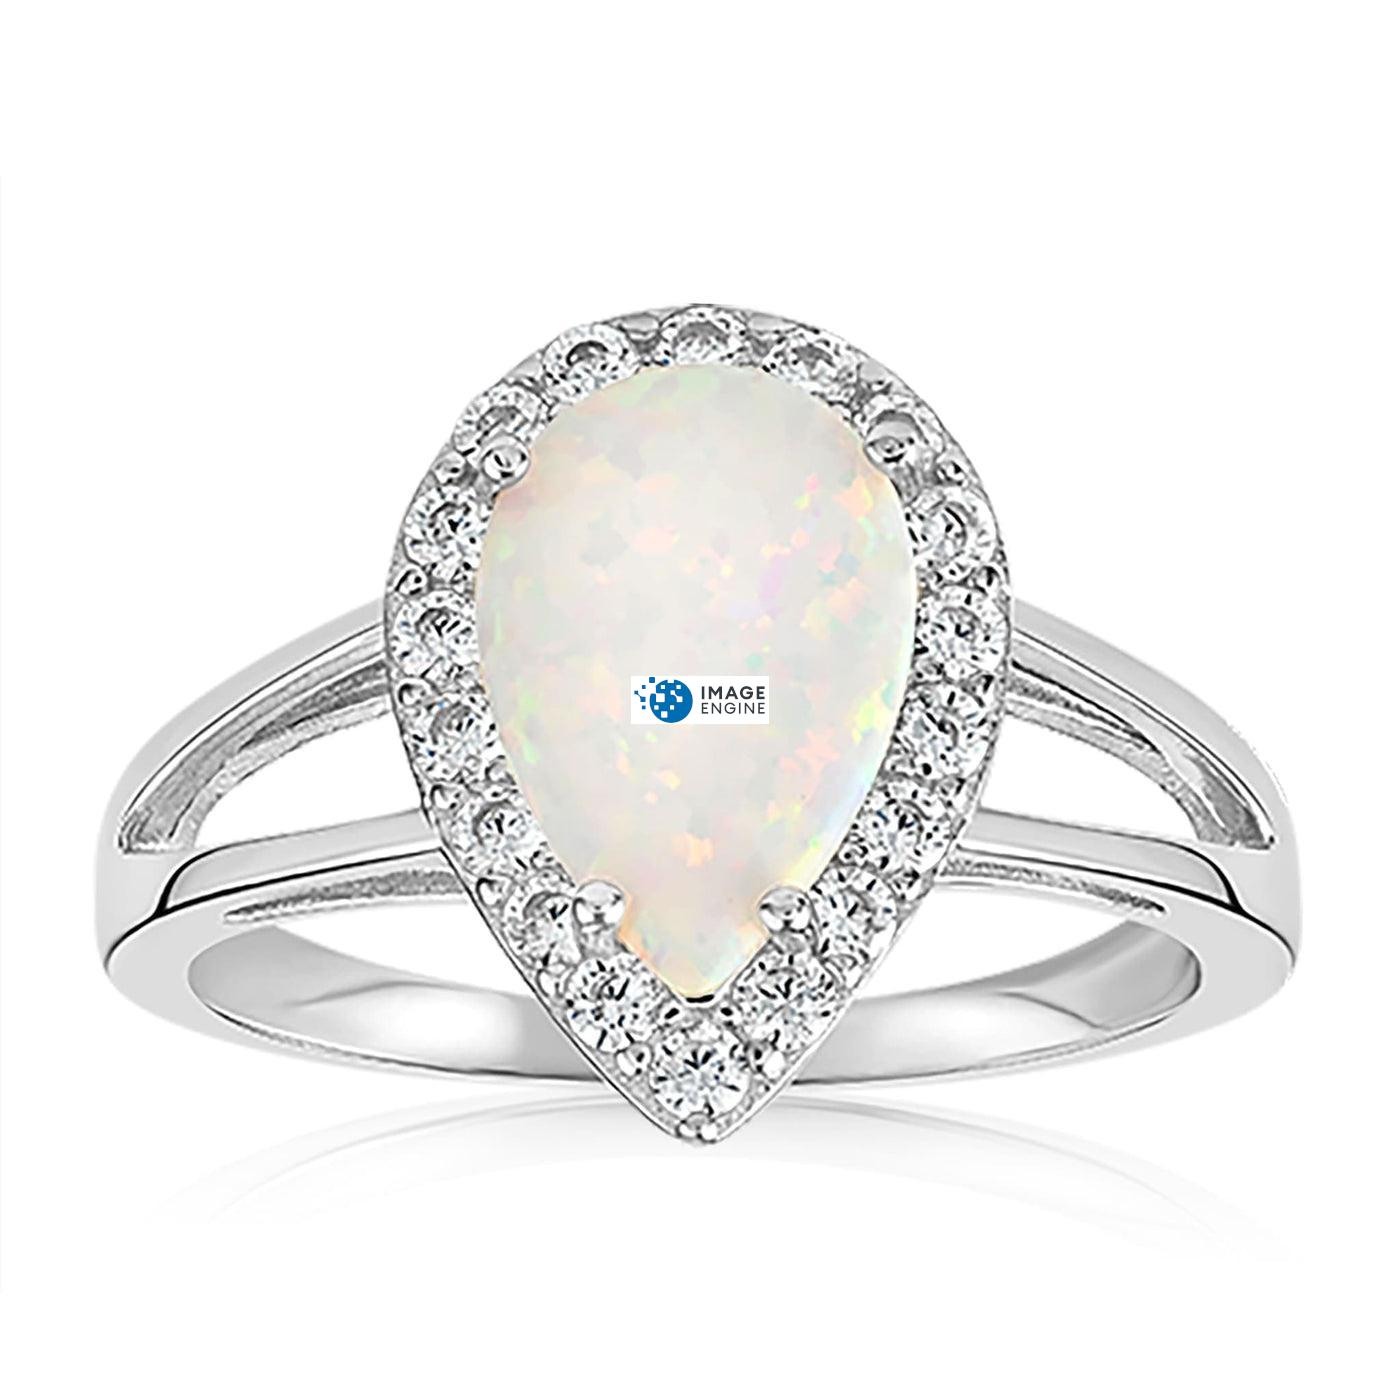 White Fire Champagne Opal Ring - Front View Facing Down - 925 Sterling Silver